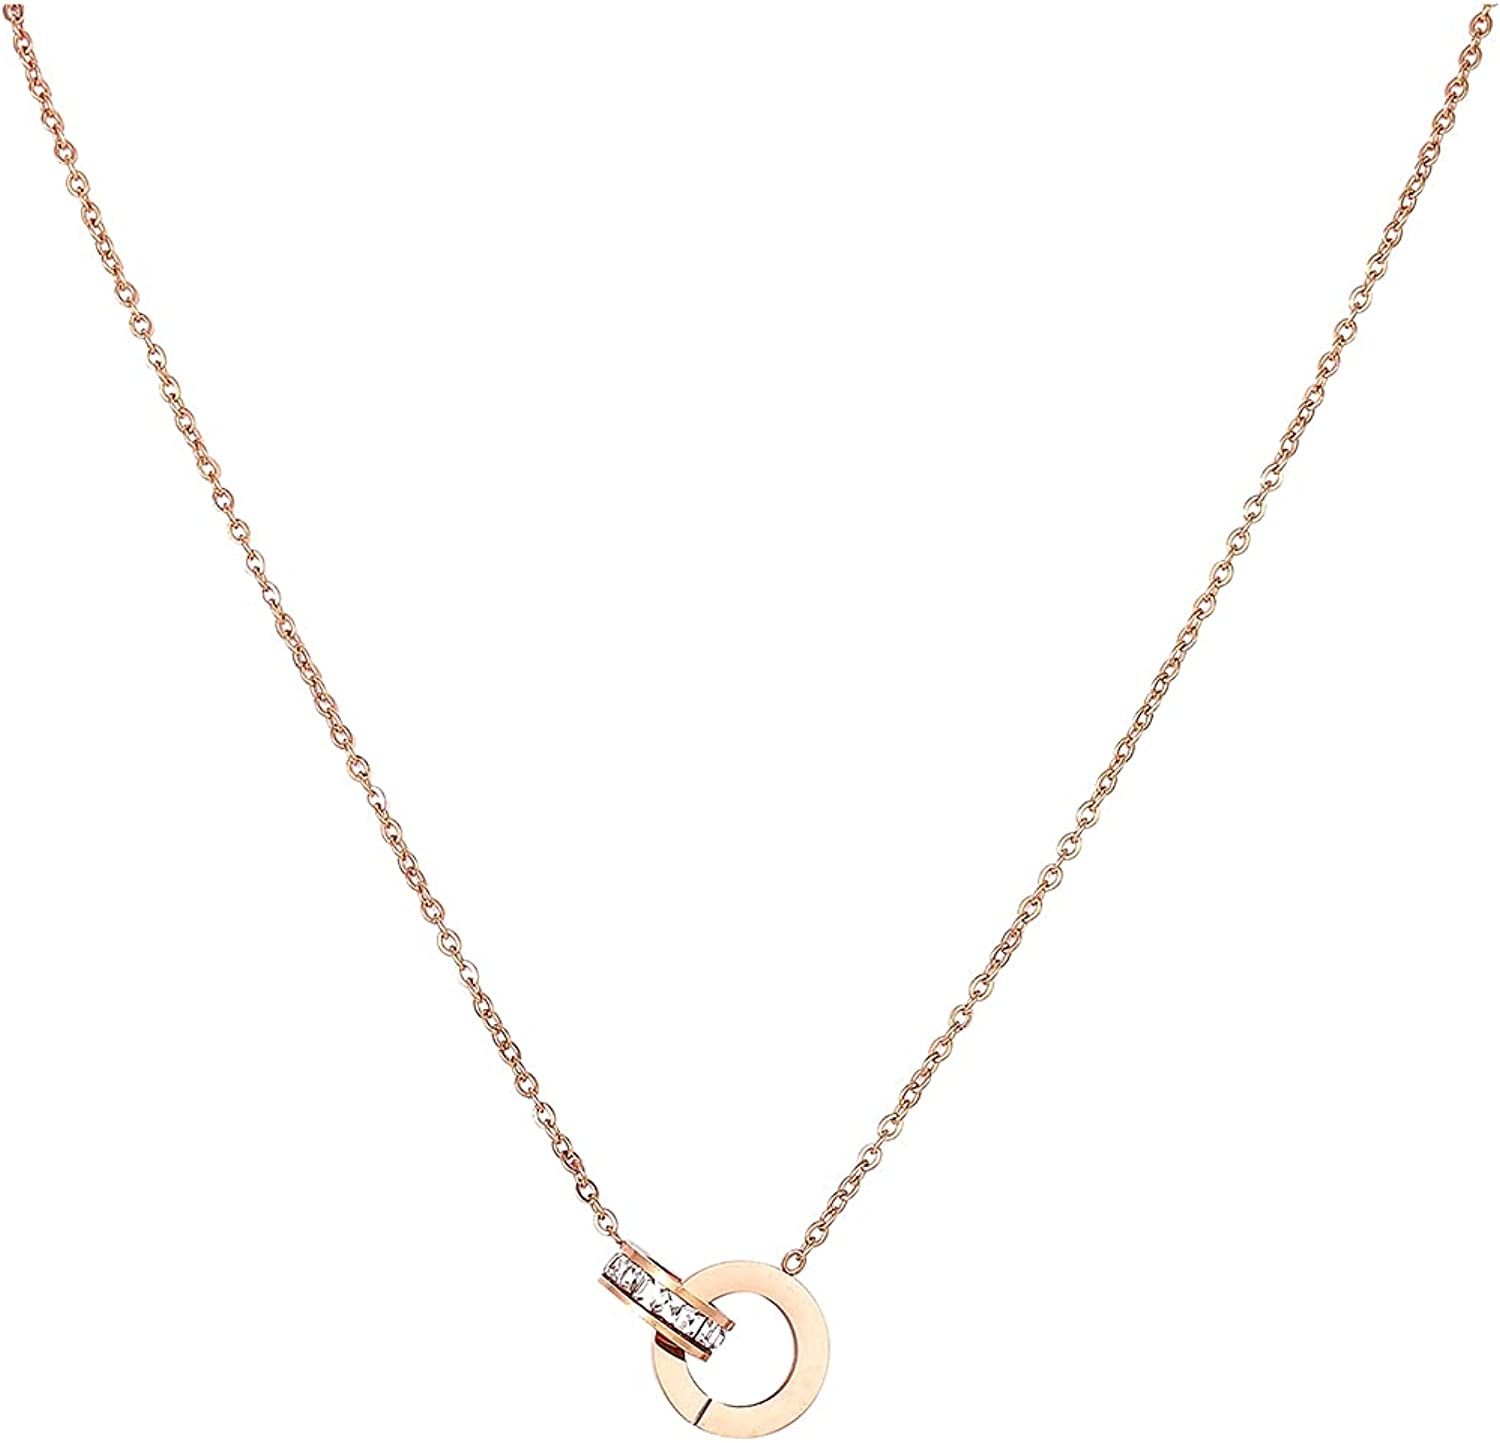 HYMUS Personalized Necklaces for mart Women 18K Silver Dainty Go Limited price Rose